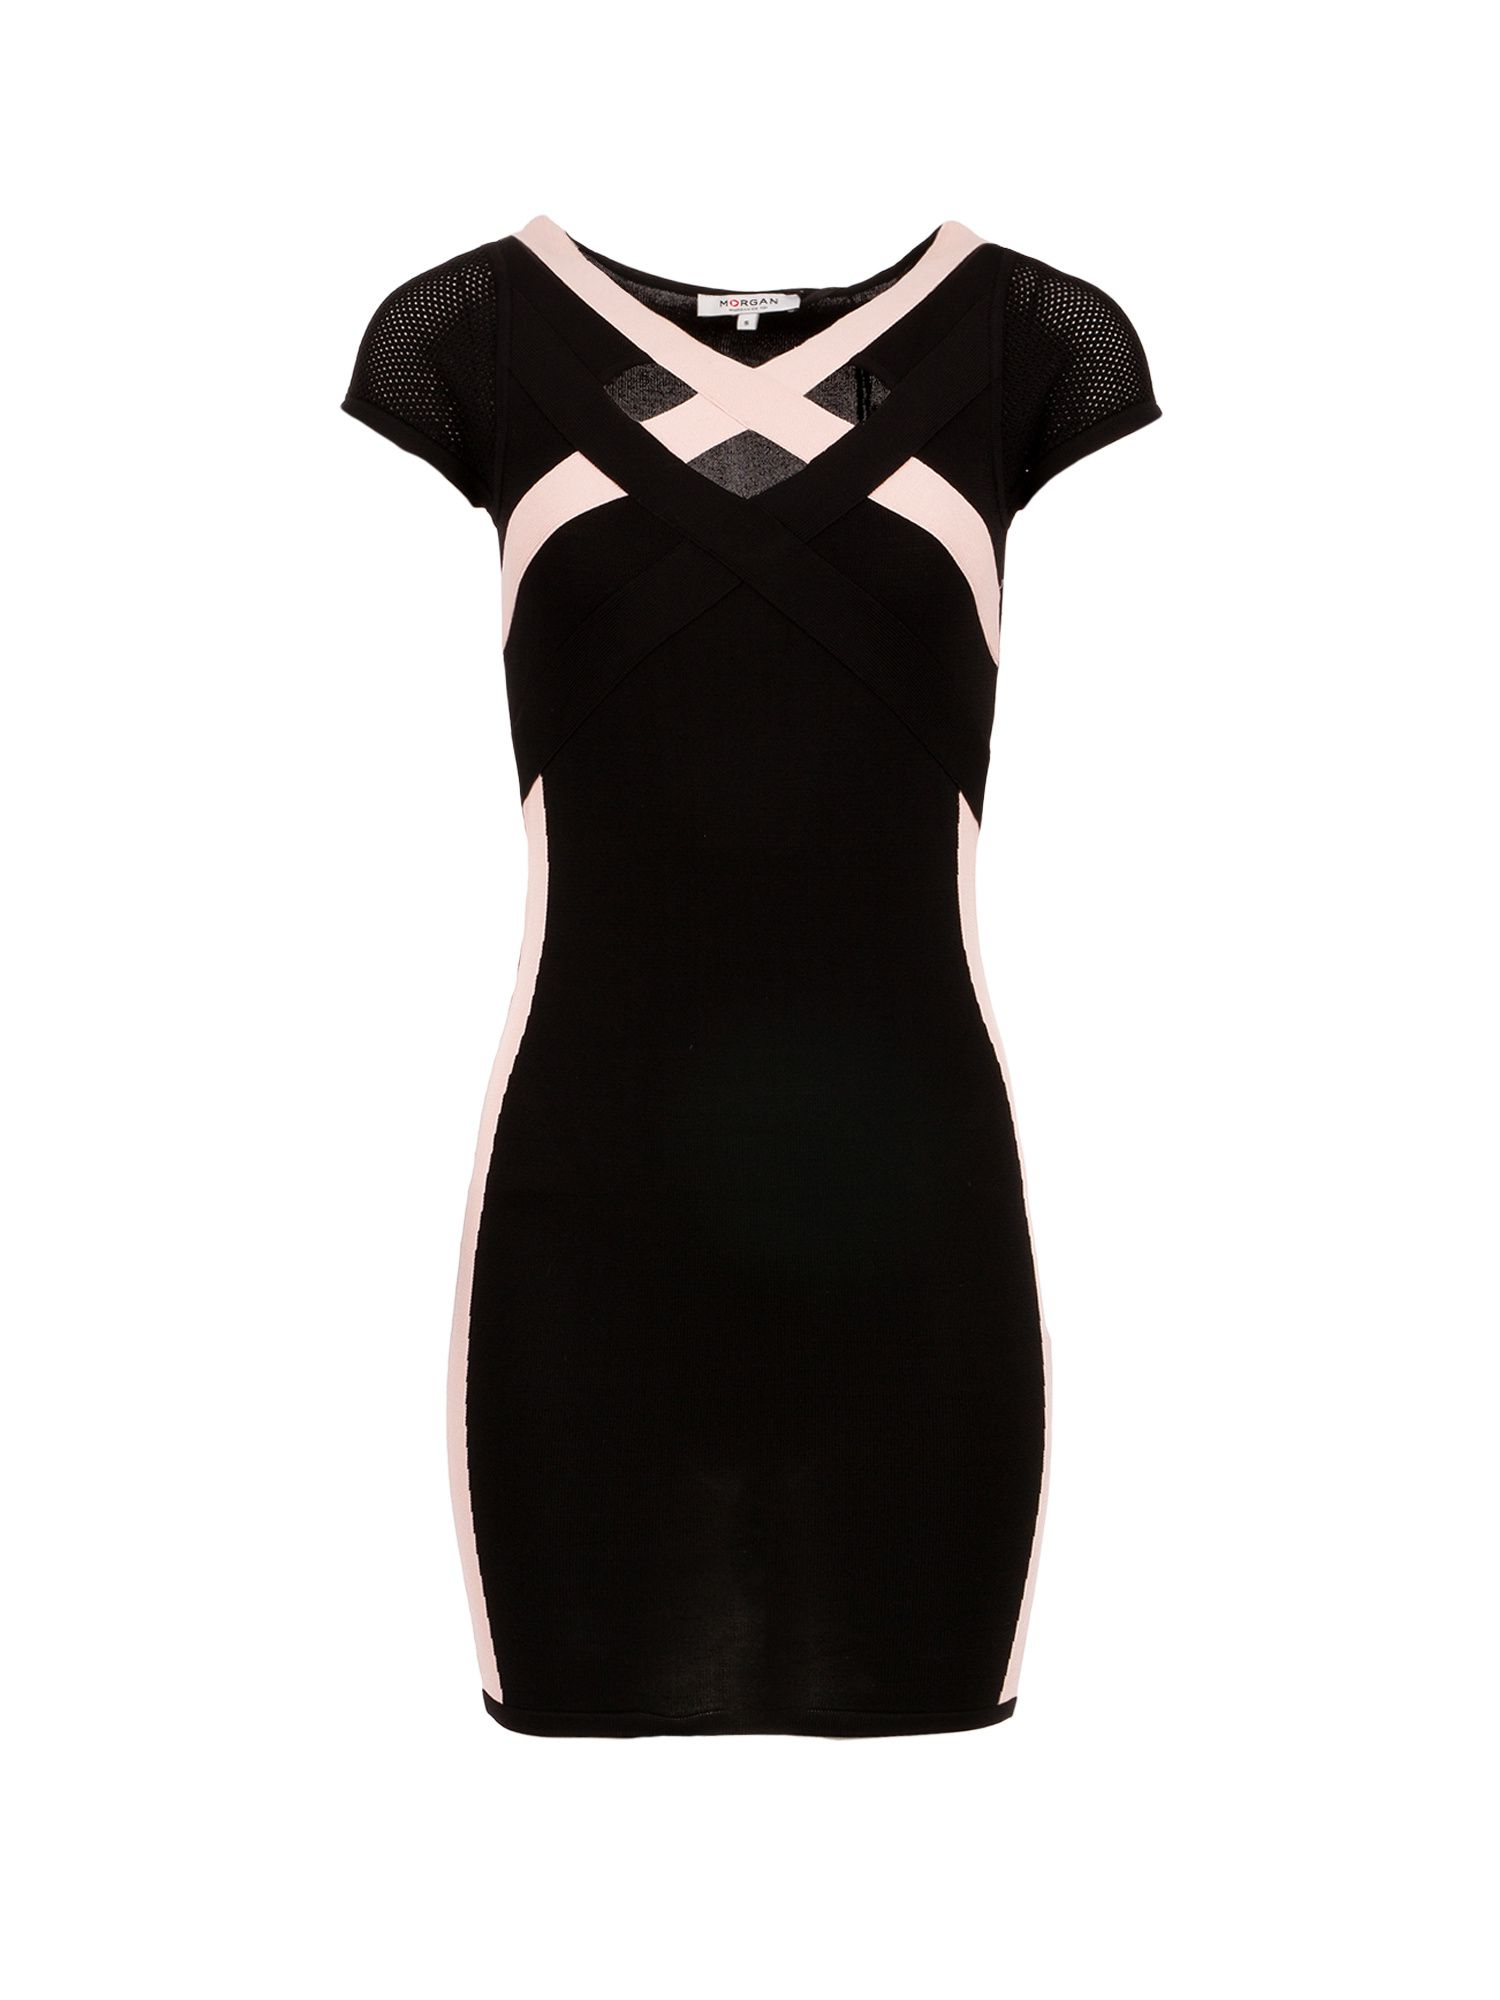 Morgan Criss Cross Neckline Bodycon Dress, Black